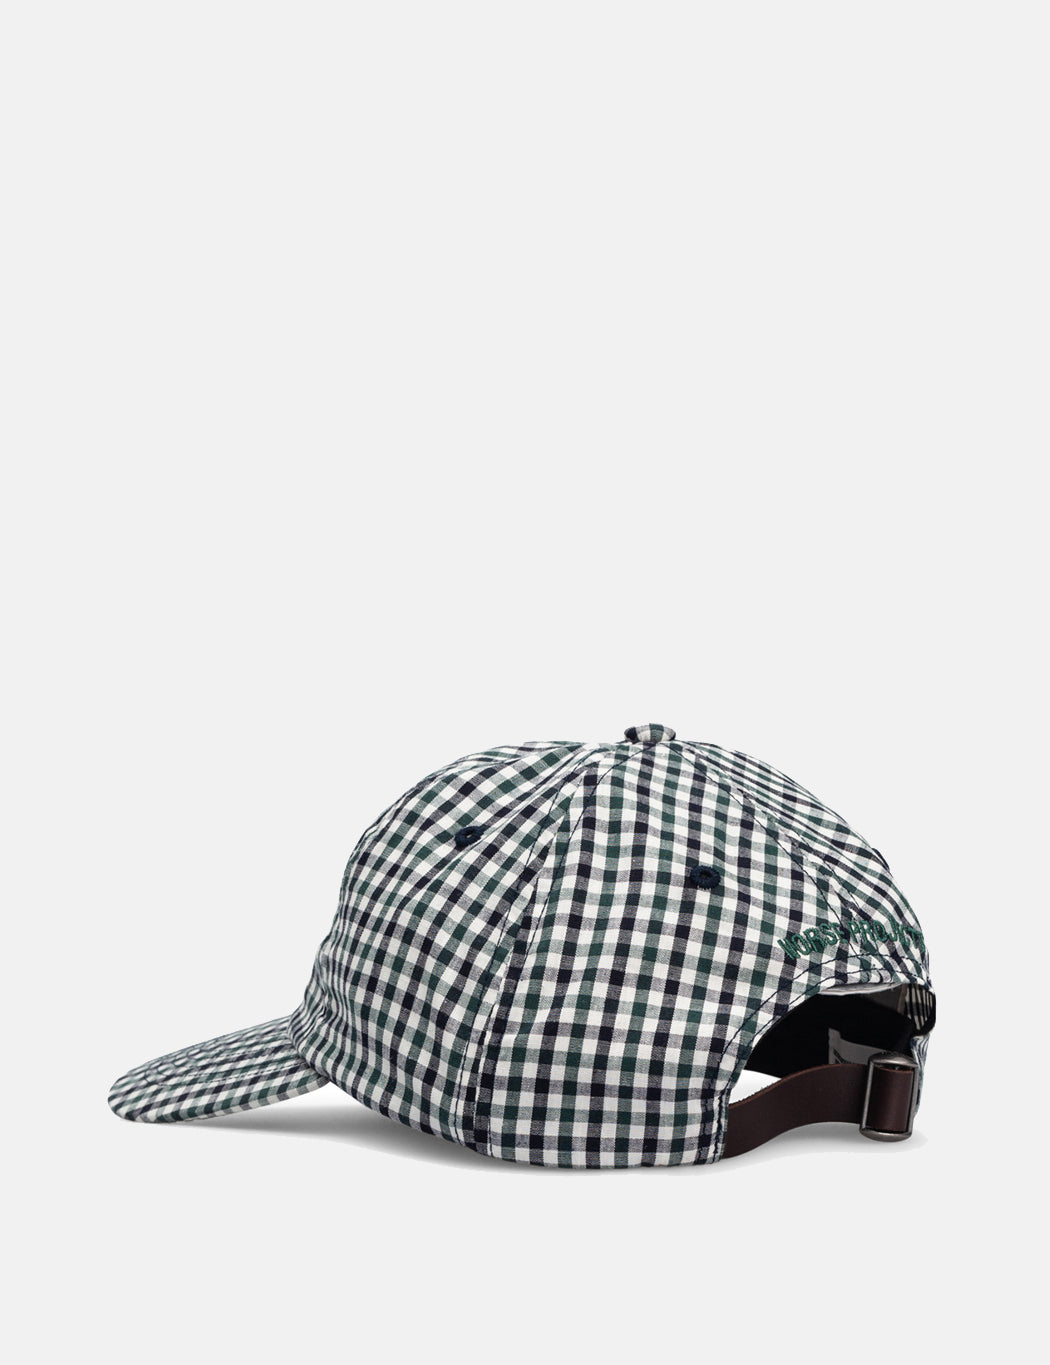 07b66c91c6 Norse Projects Gingham Sports Cap - Dark Navy Blue | URBAN EXCESS ...